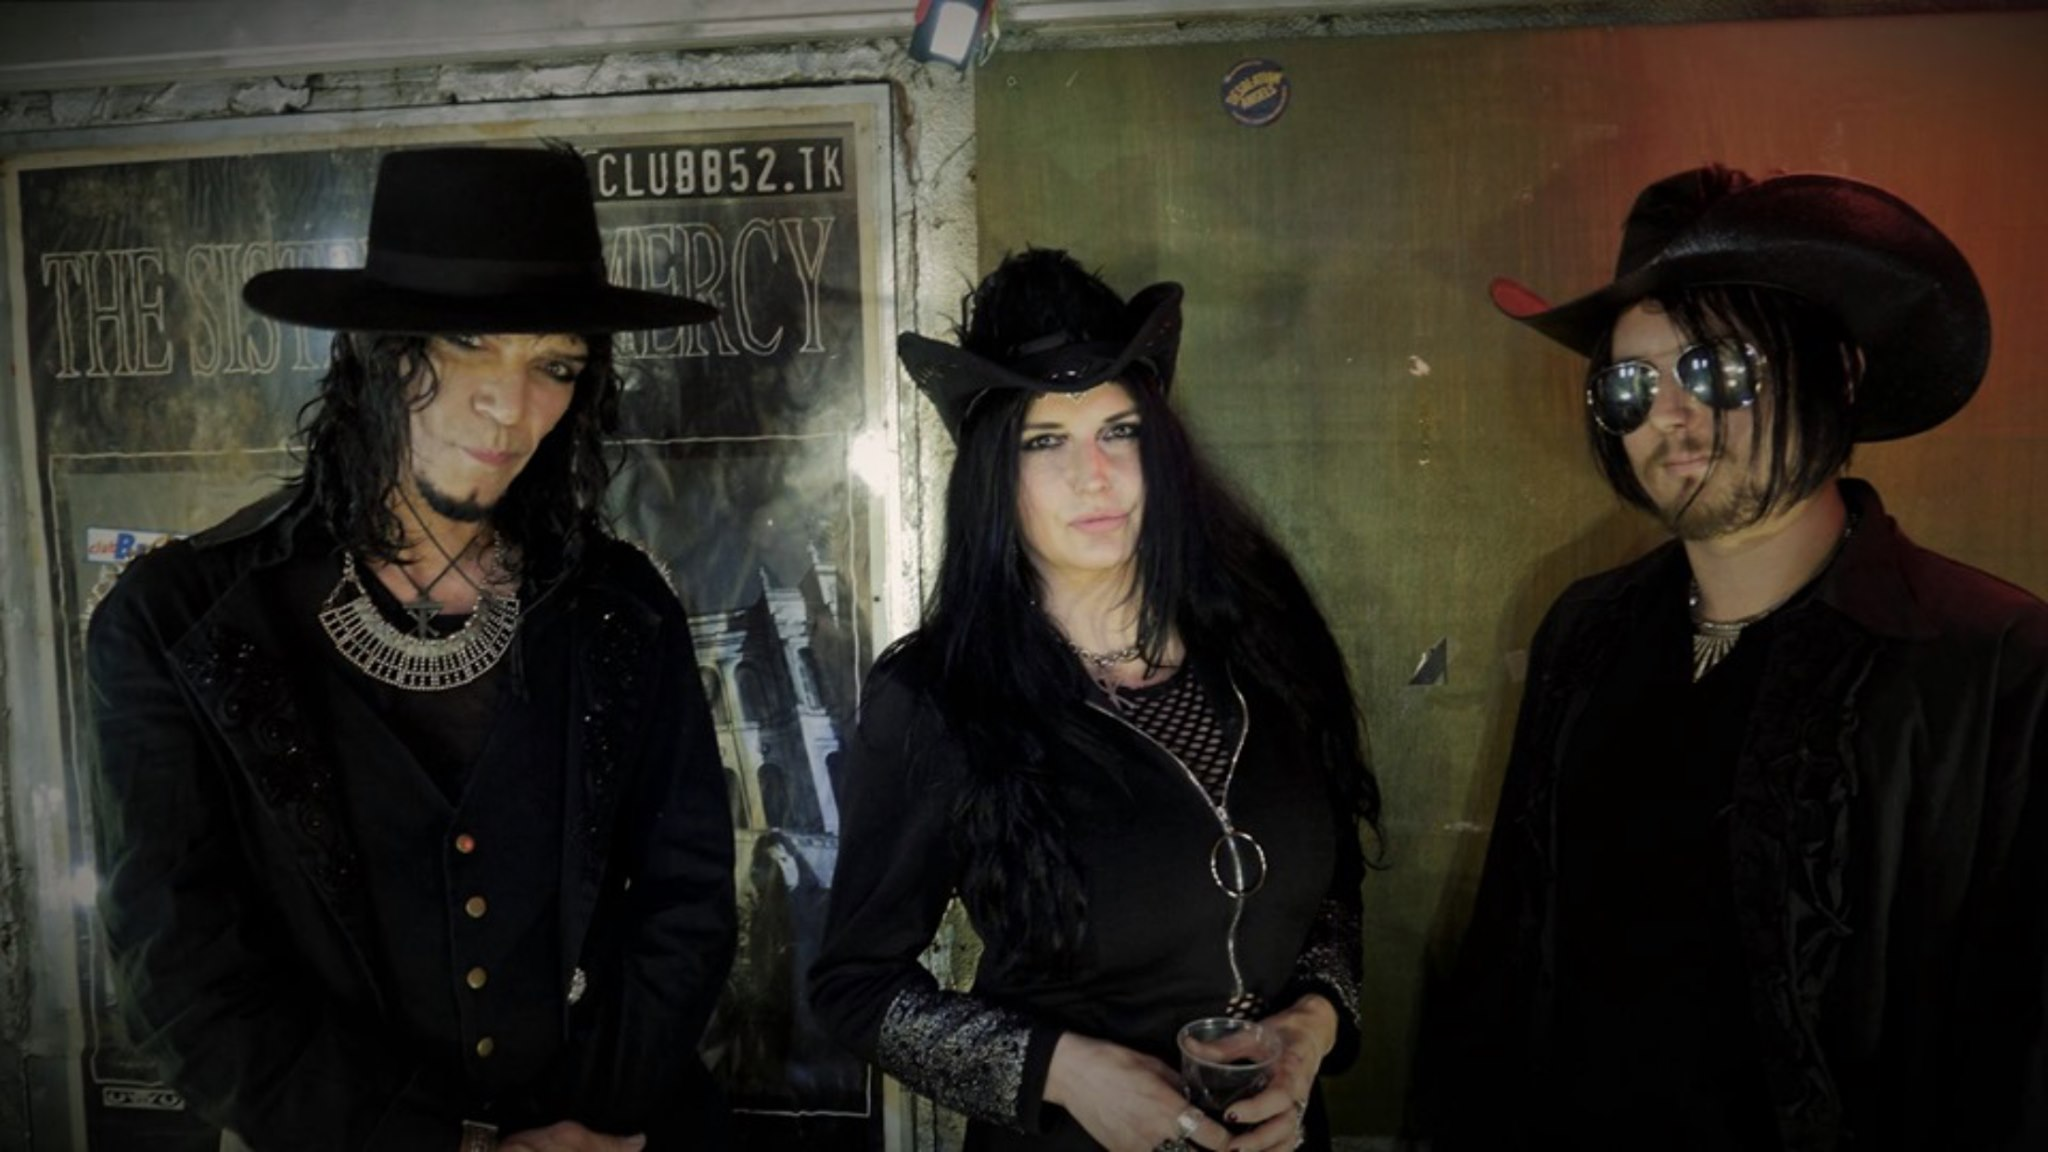 christian death news